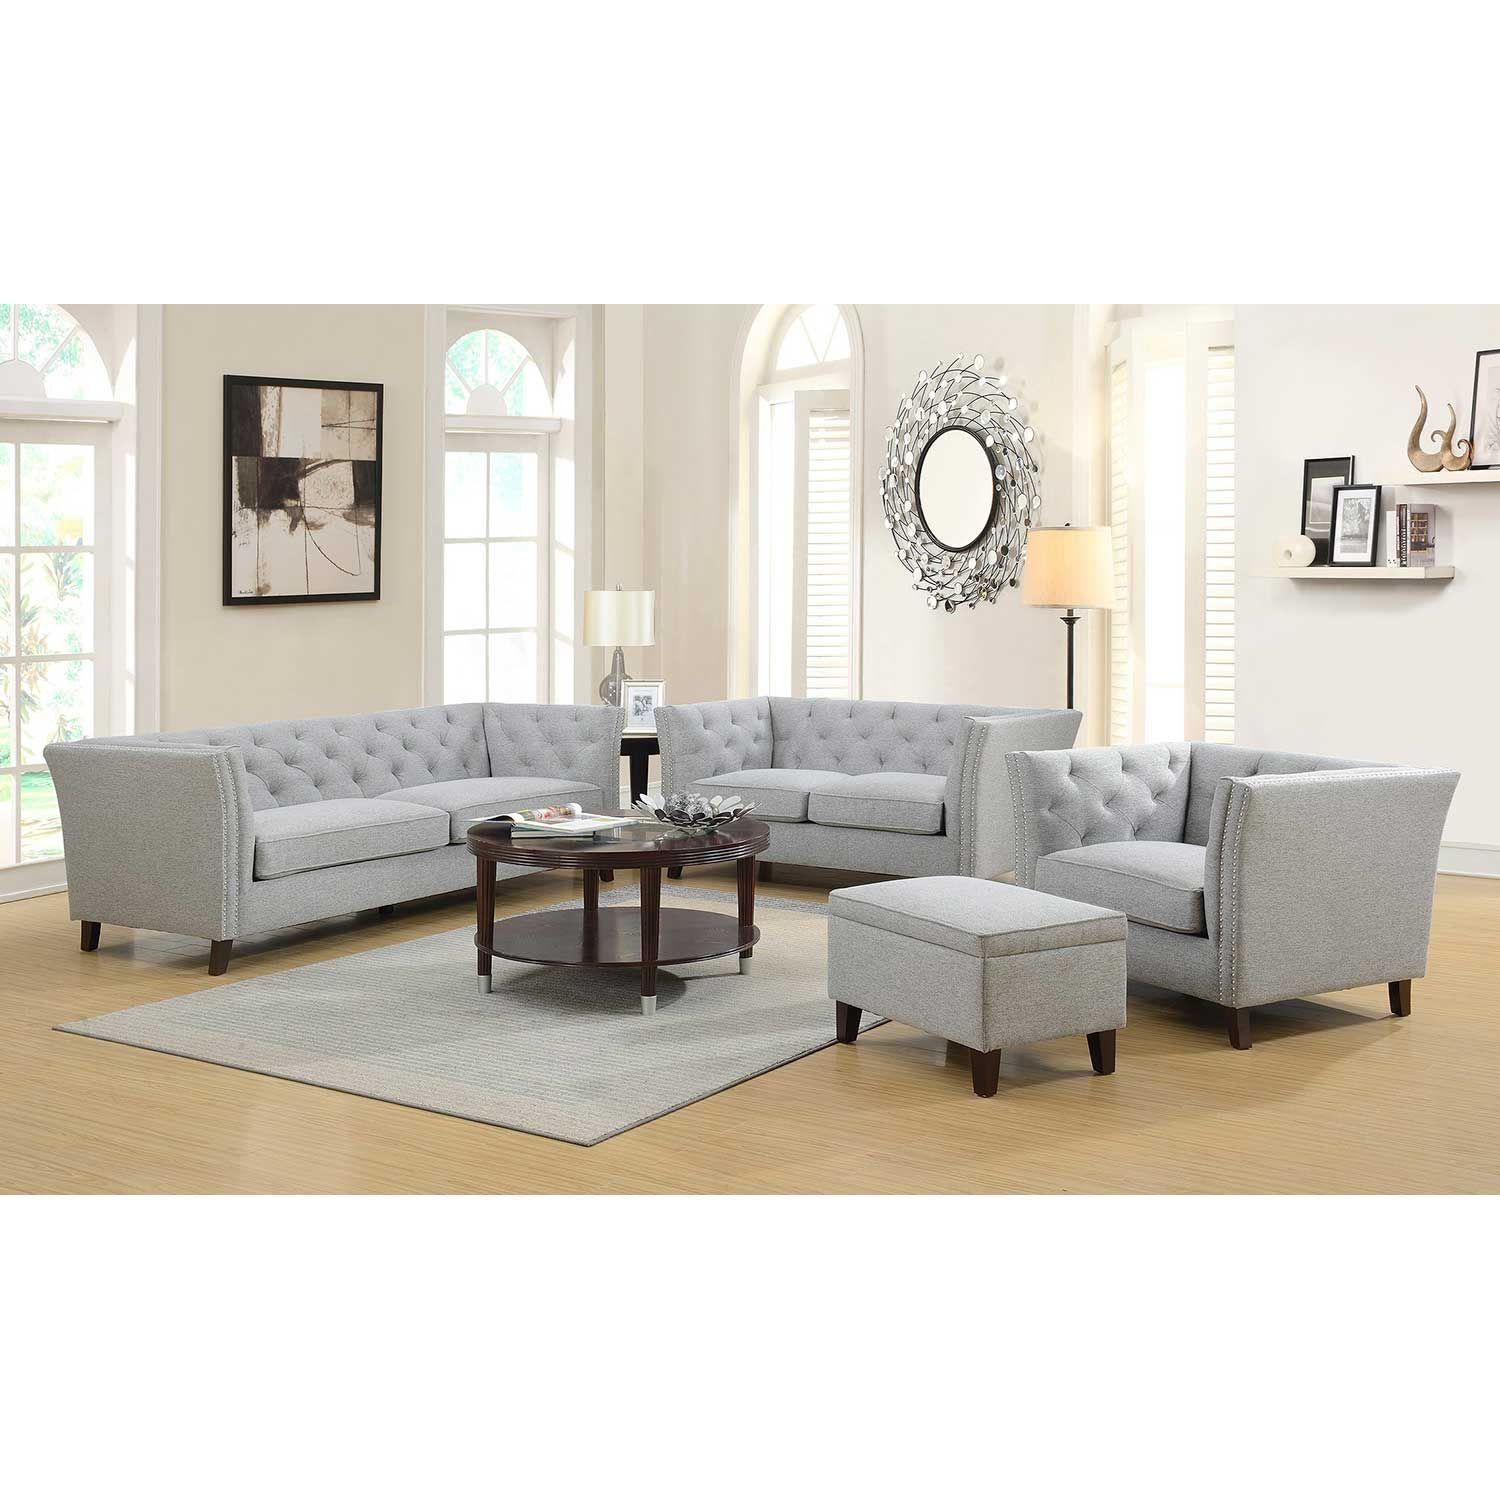 Picture Of Bethany Tufted Sofa